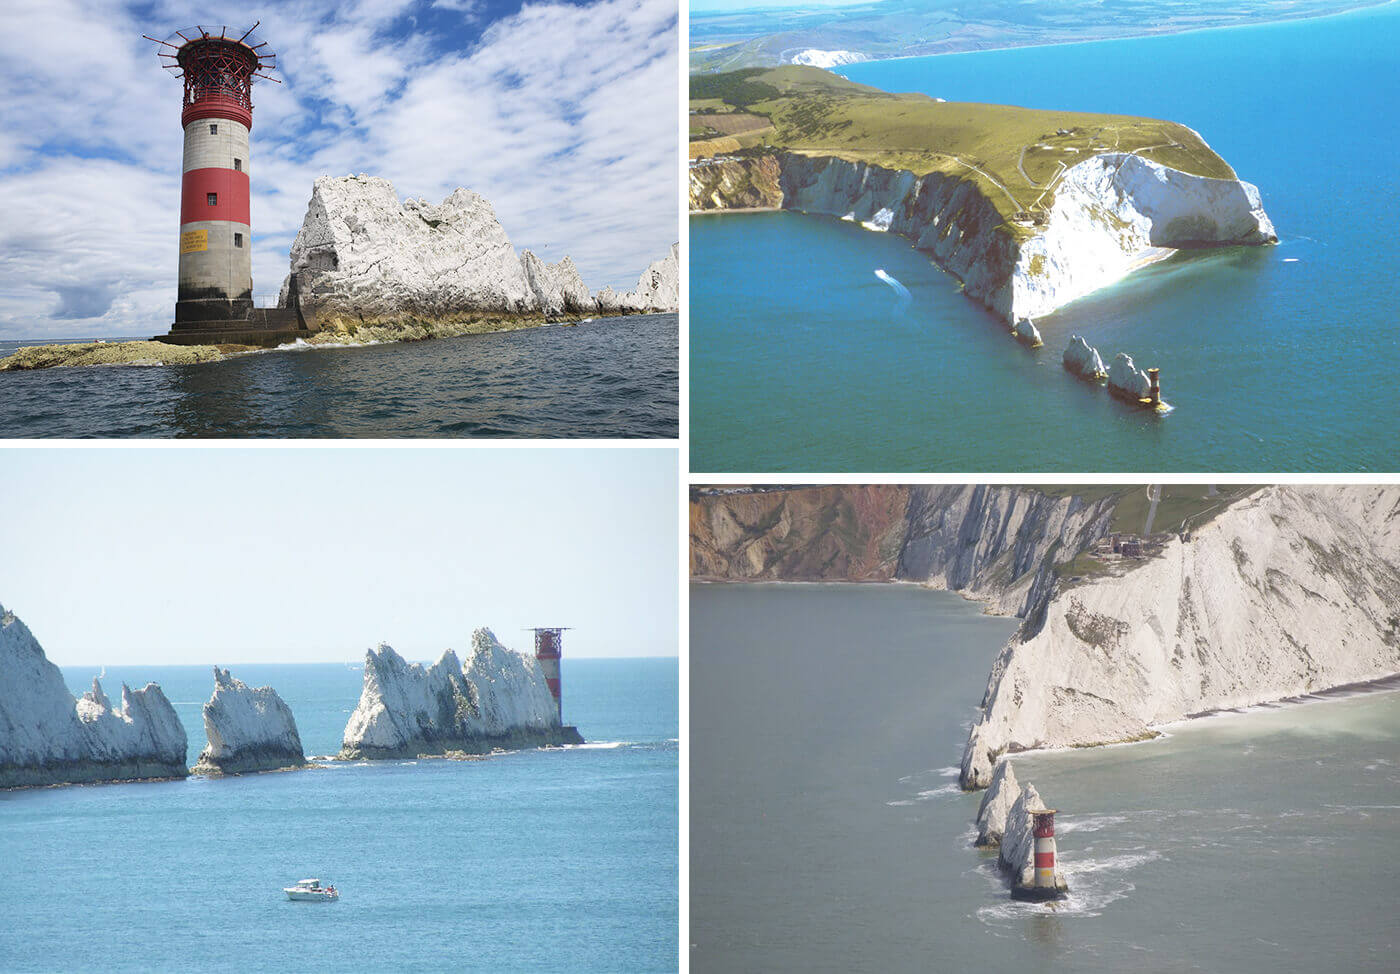 The-Needles-Isola-di-Wight-3